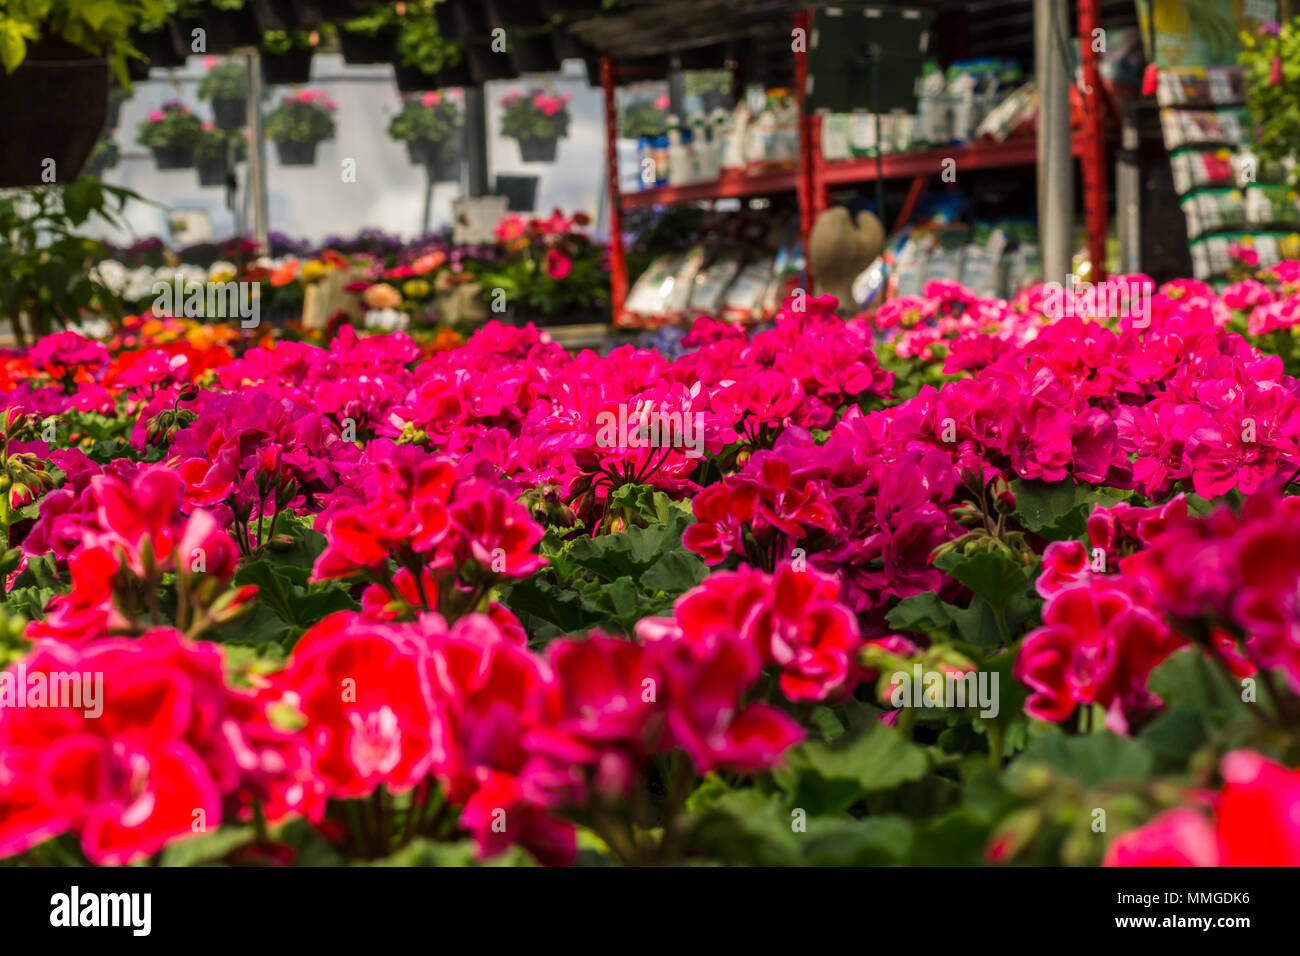 Common Garden Flowers Stock Photo 184758762 , Alamy